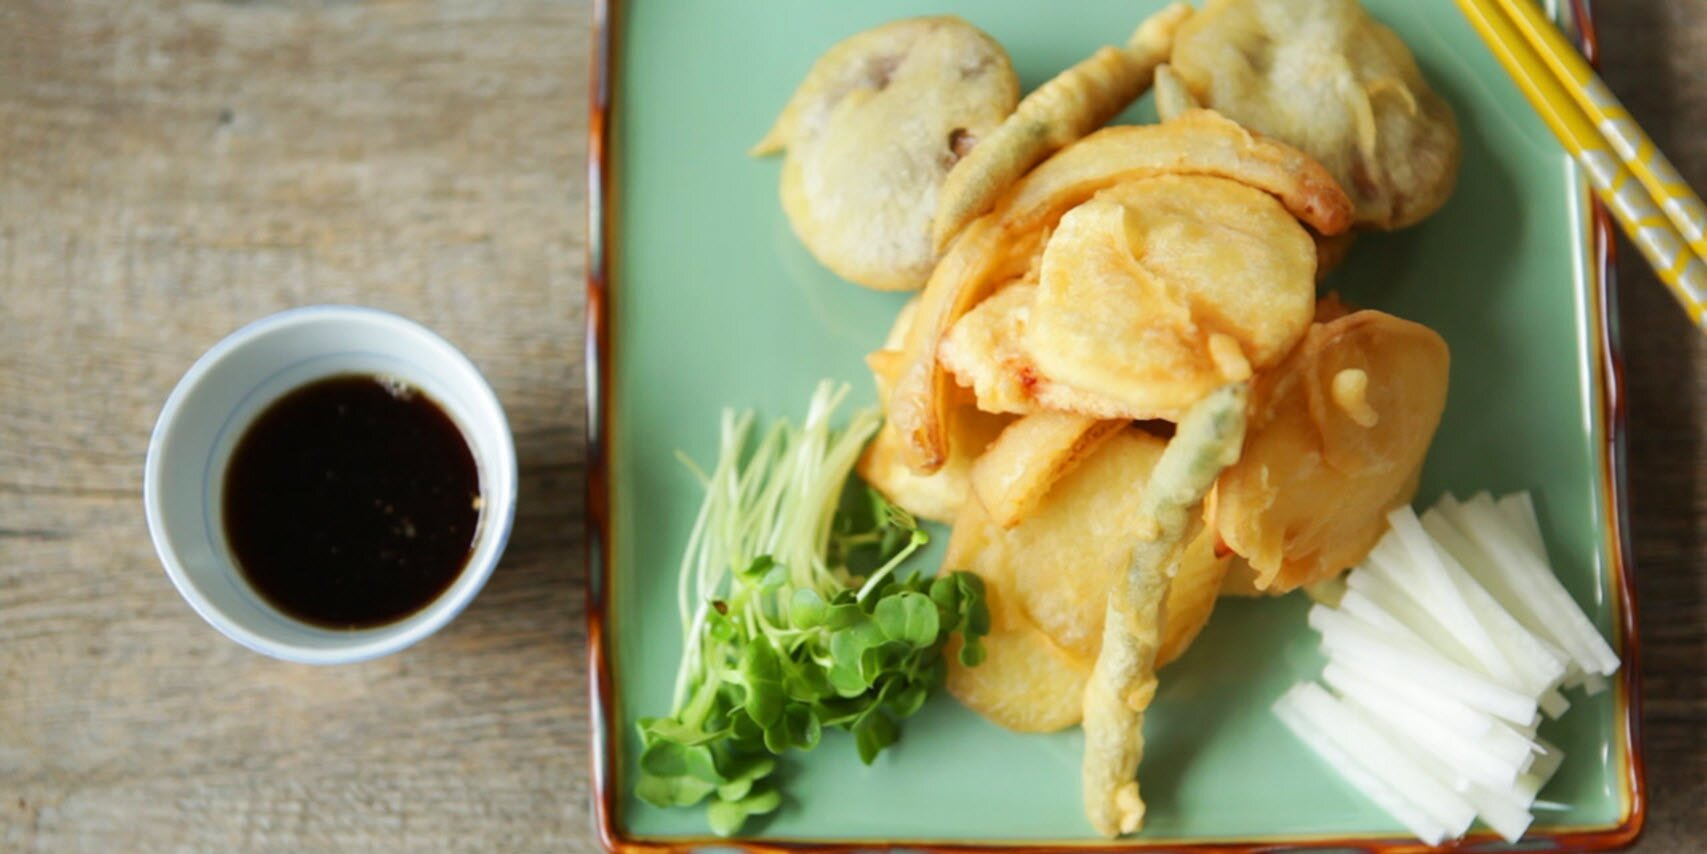 What Is Tempura and How Is It Made?